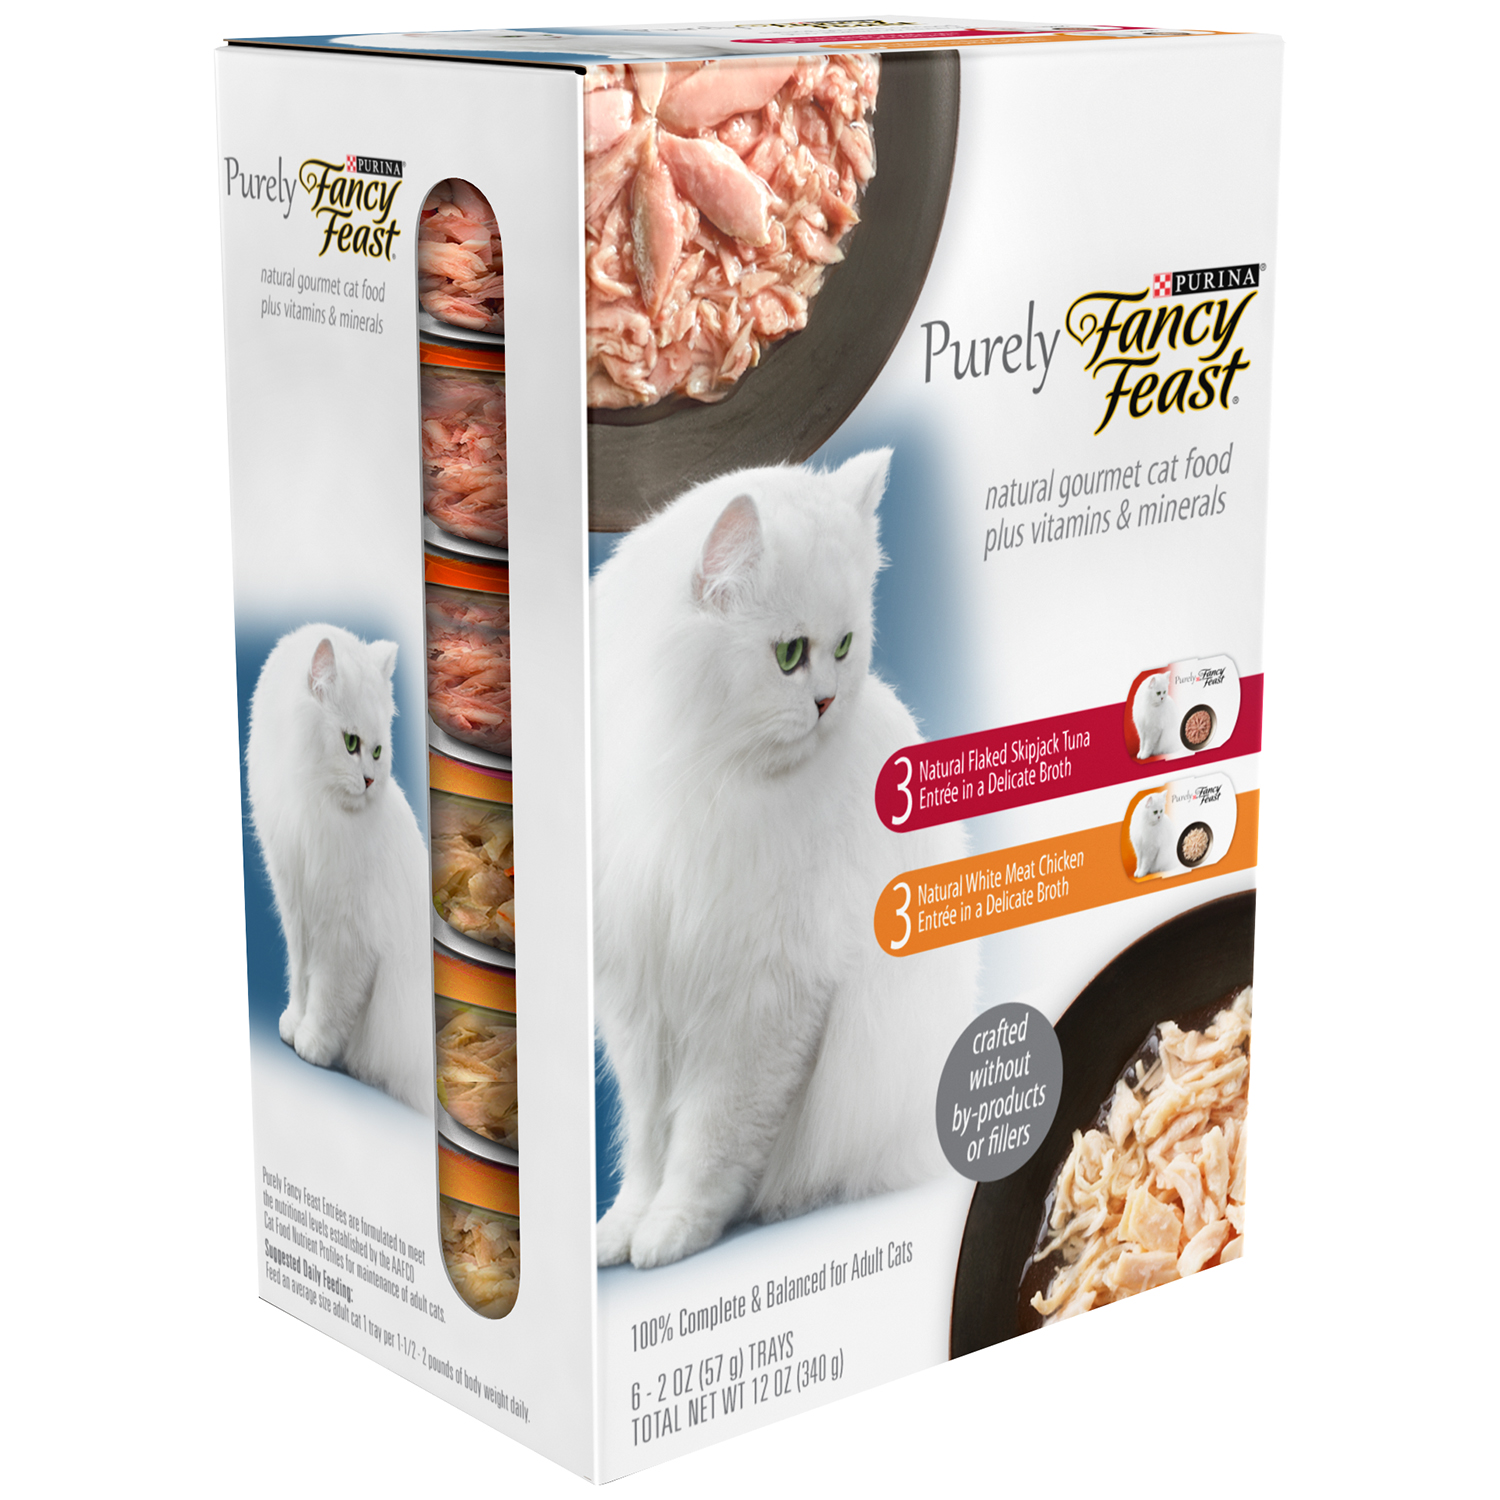 Purina Purely Fancy Feast Natural Collection Cat Food 6-2 oz. Trays